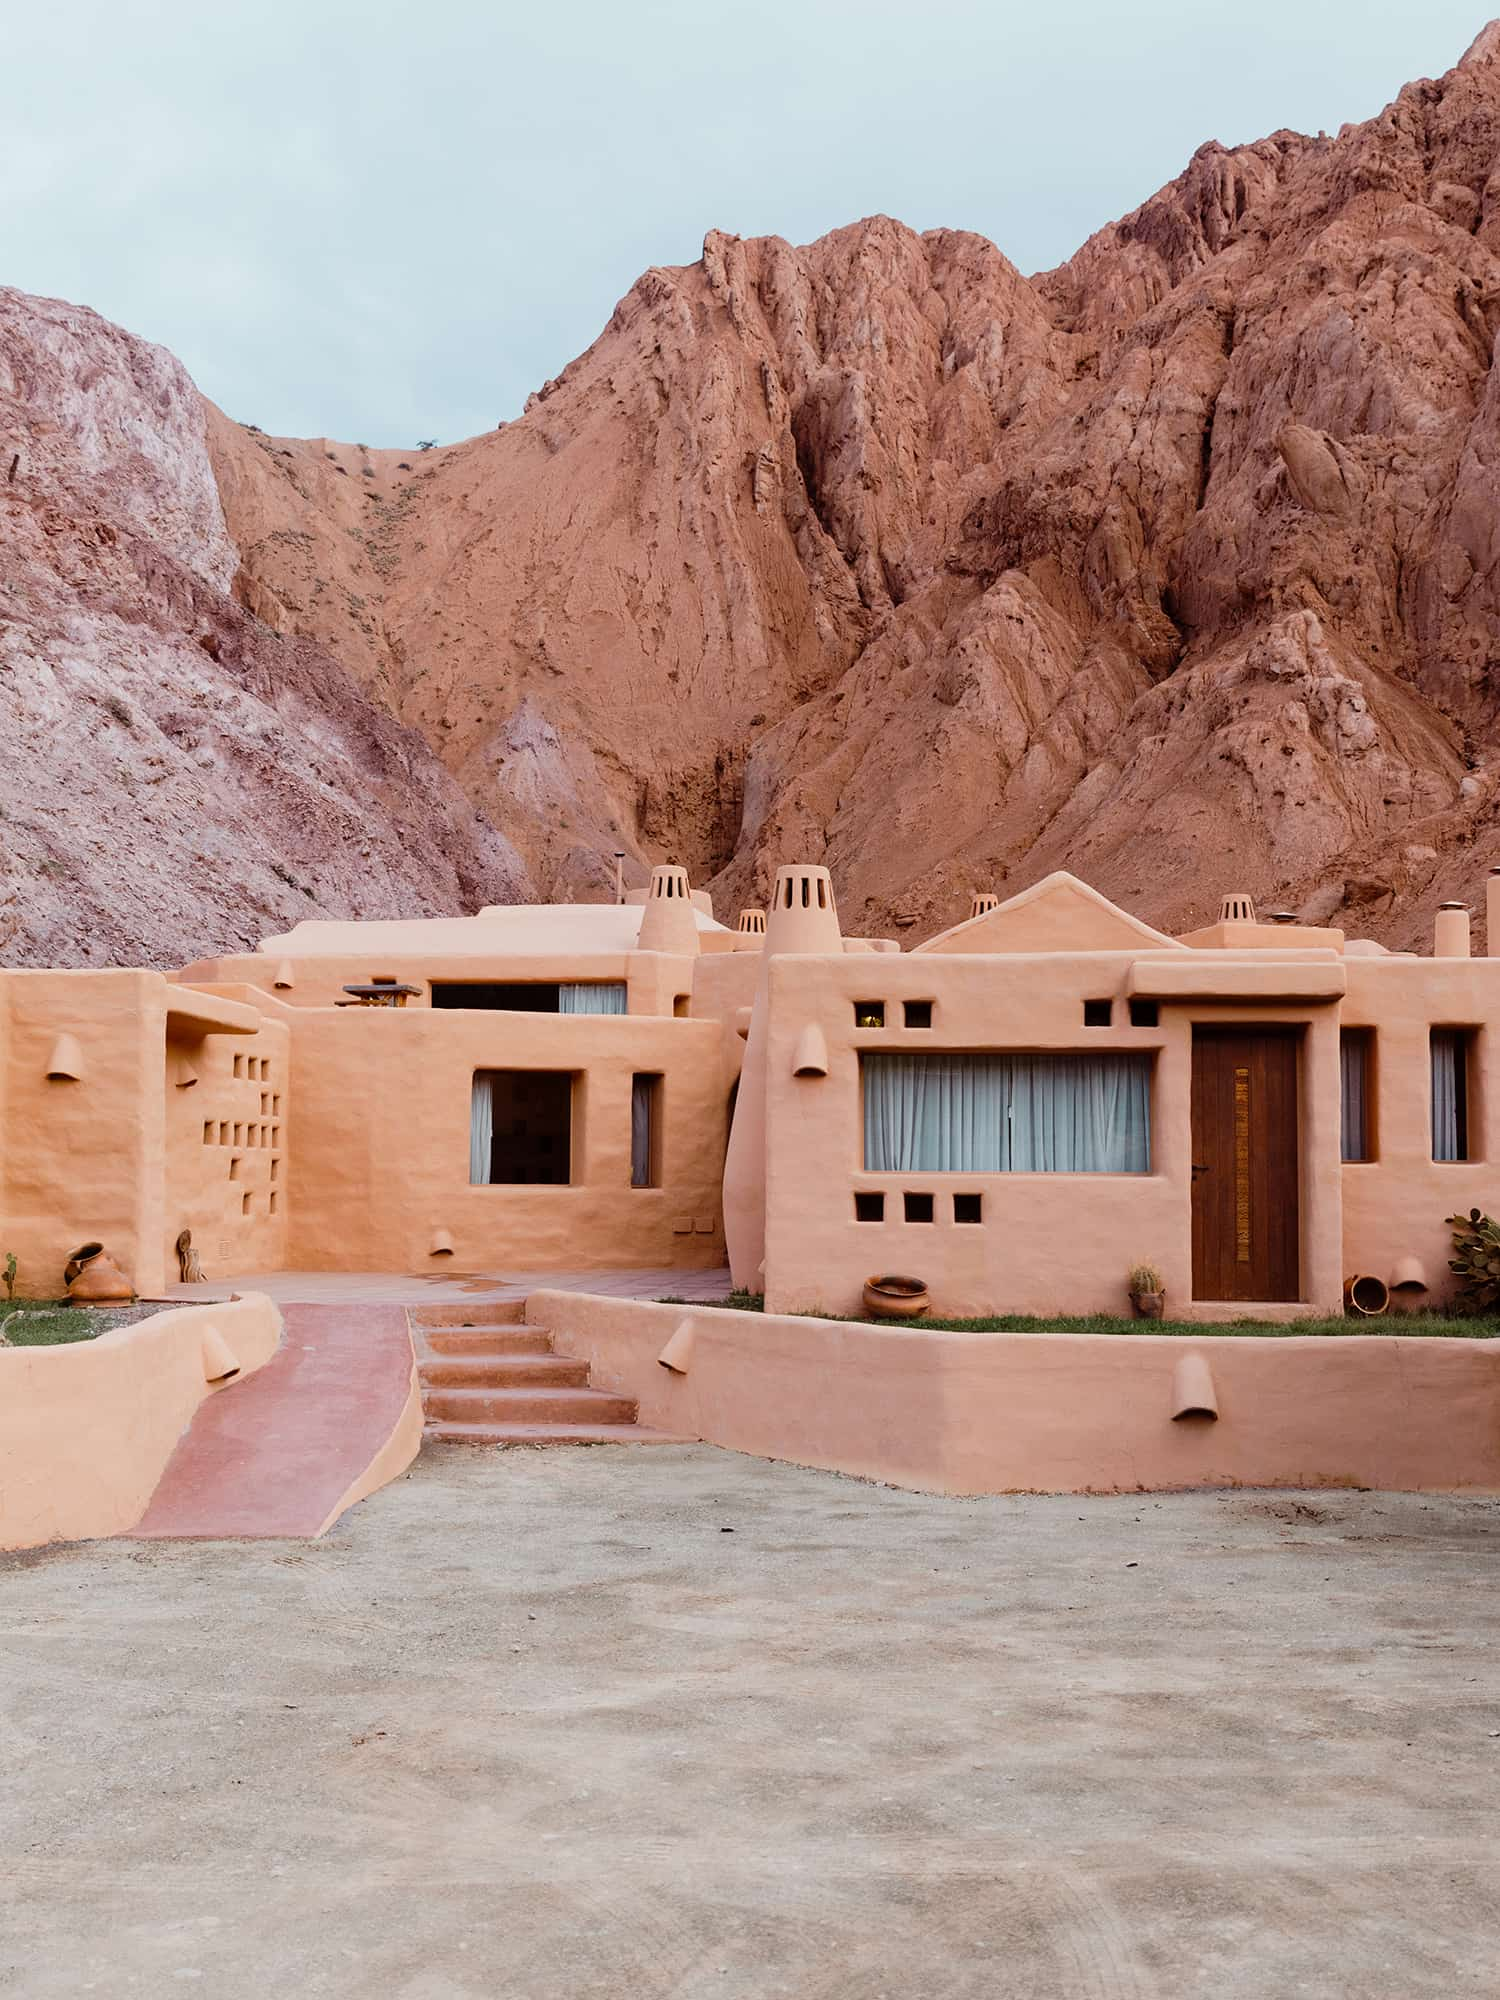 Northern Argentina: a full guide to Salta & Jujuy provinces